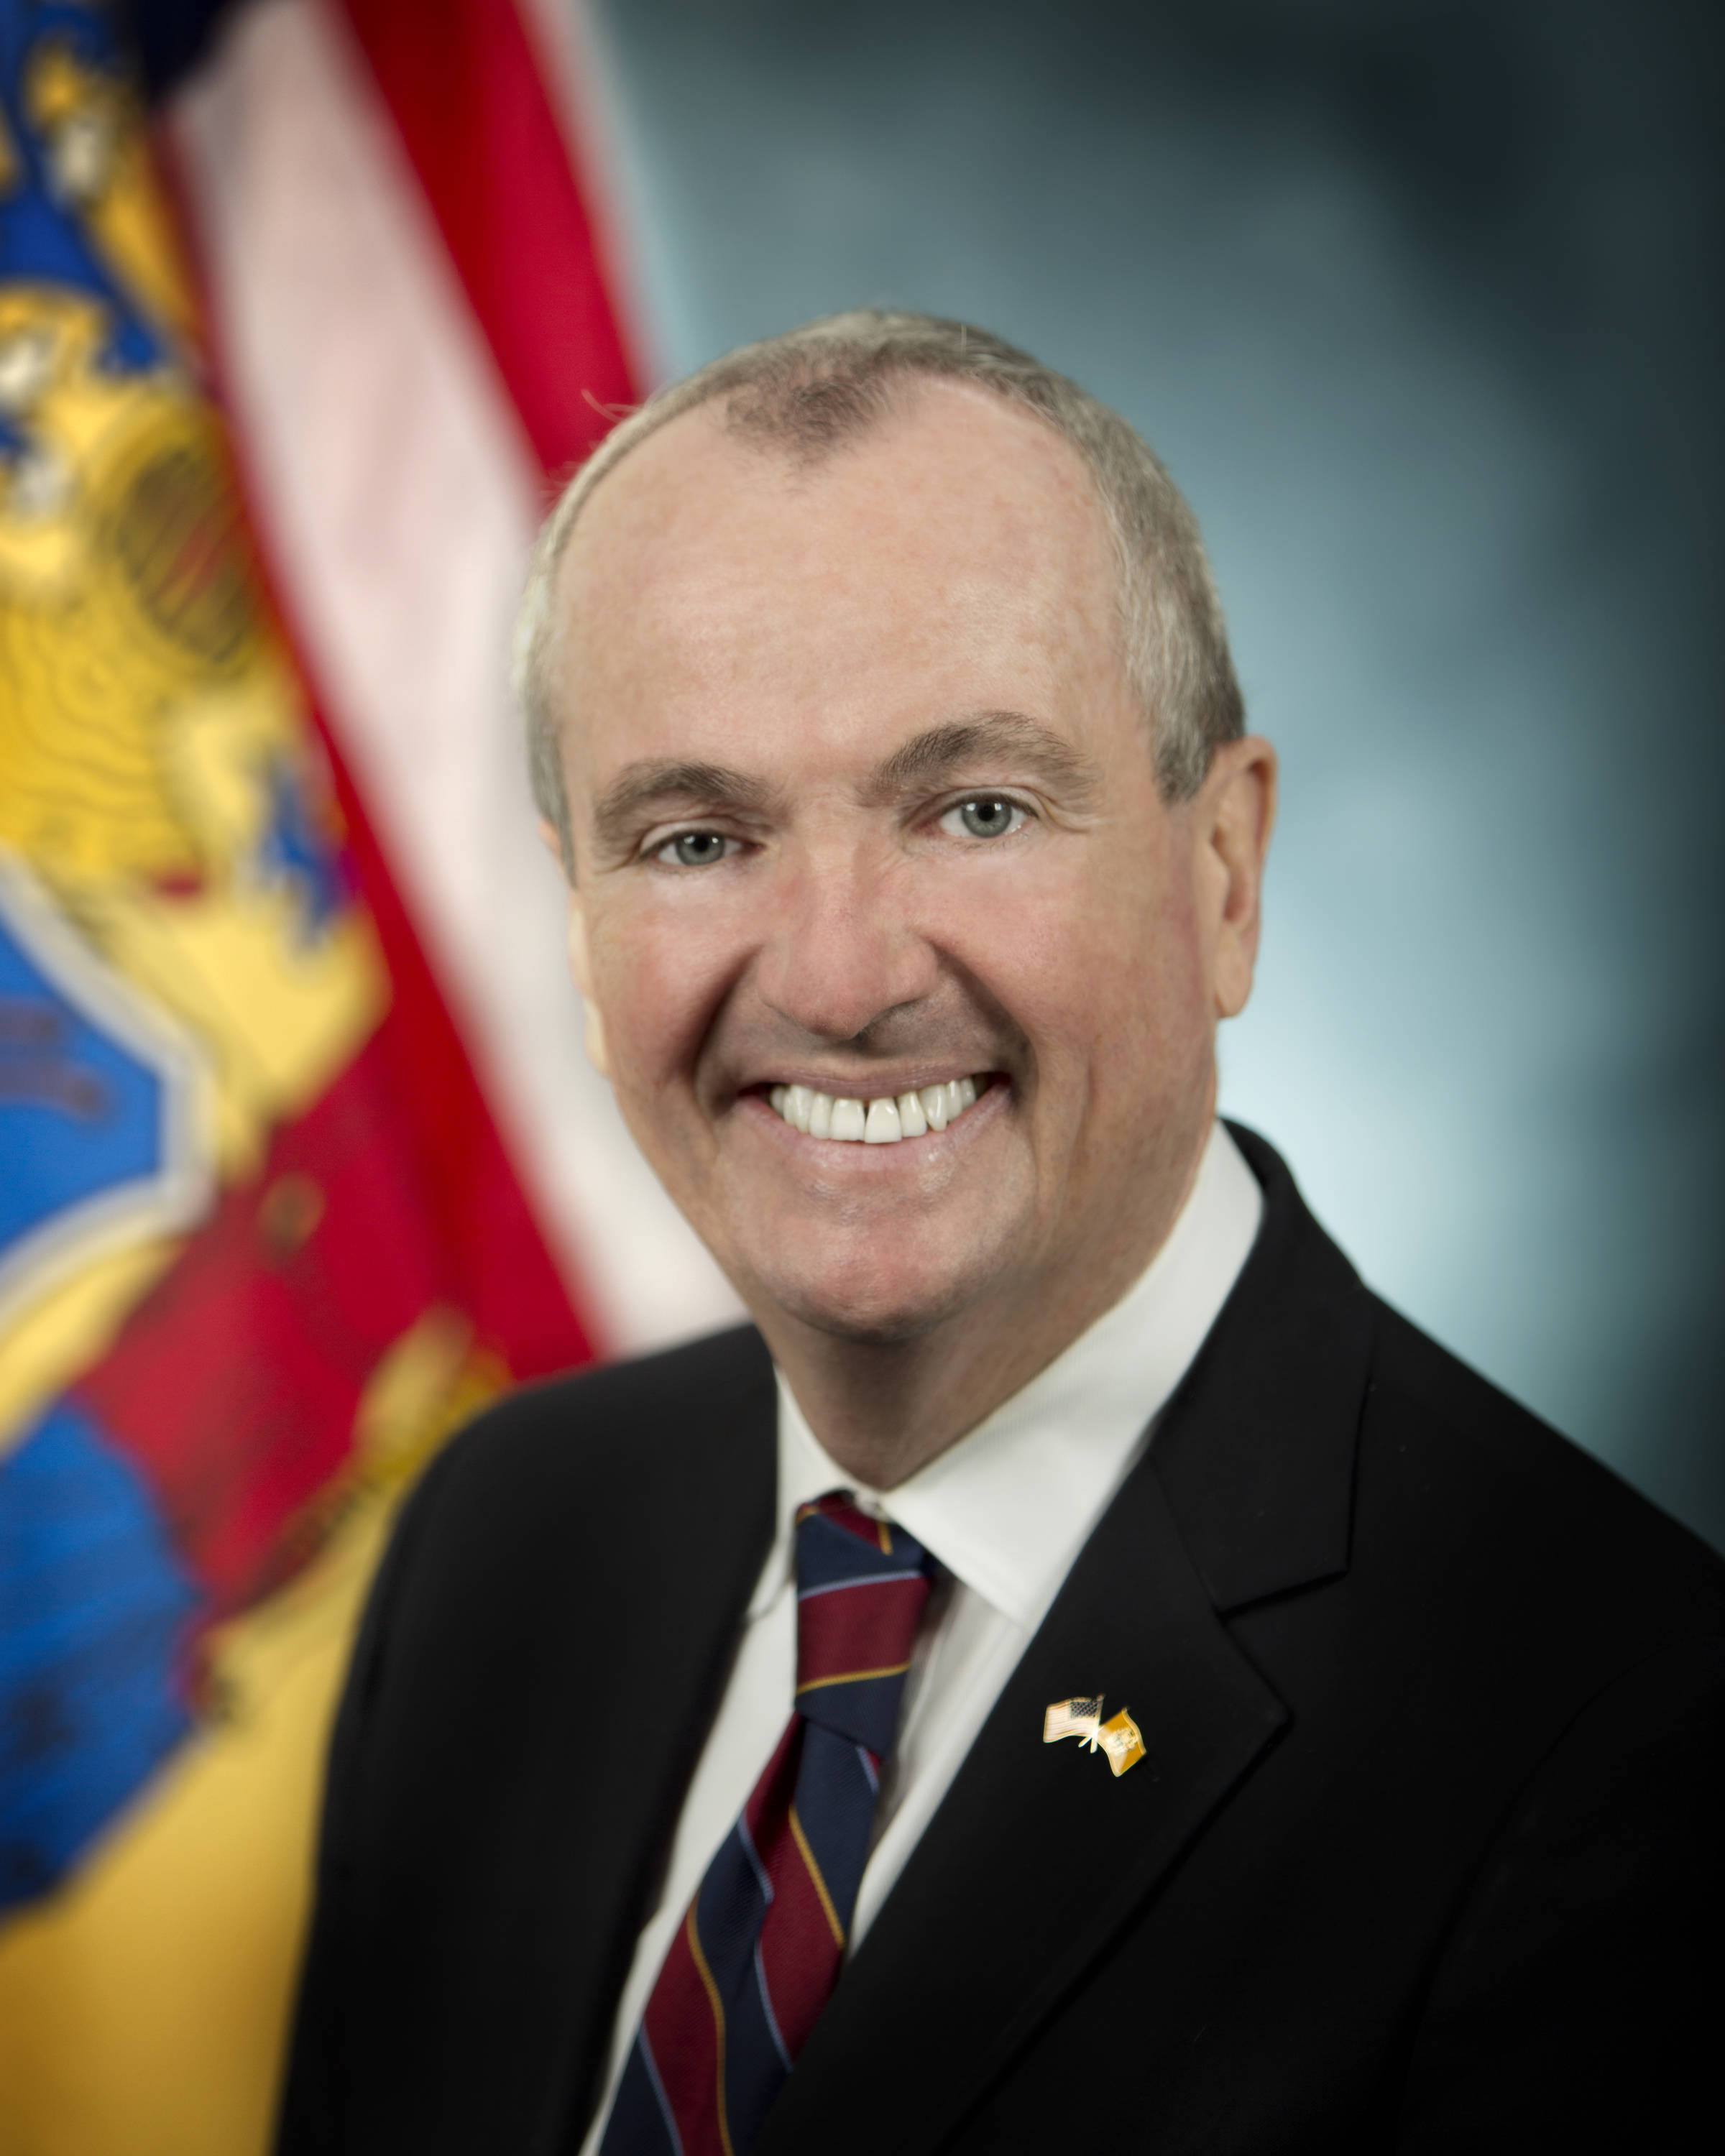 NJ Gov. Phil Murphy approves 'motor-voter' registration law over GOP objections